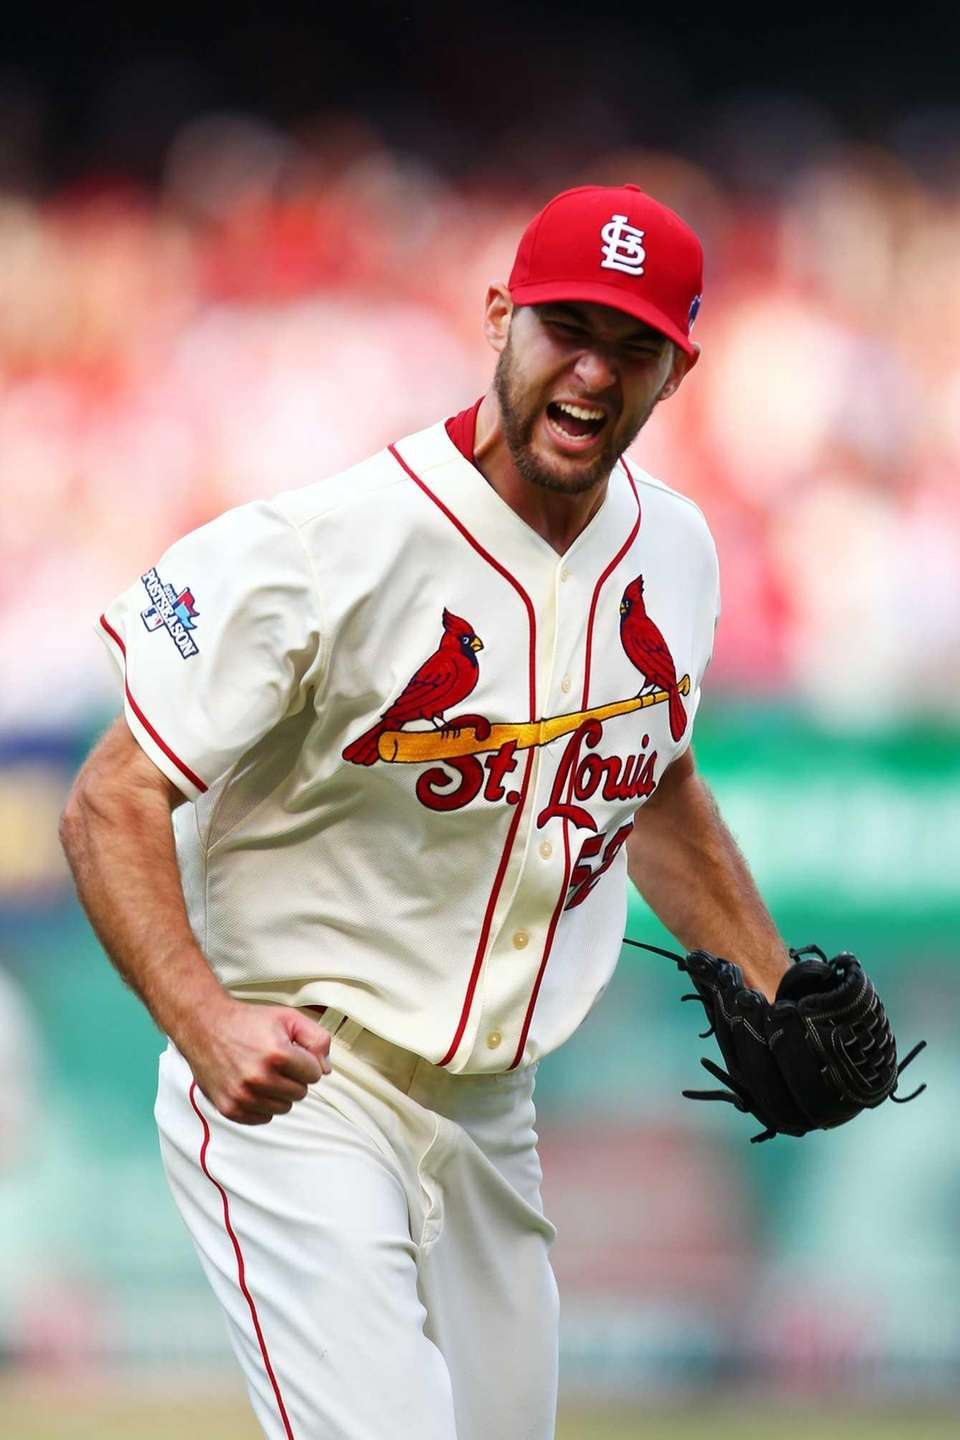 St. Louis Cardinals pitcher Michael Wacha celebrates striking